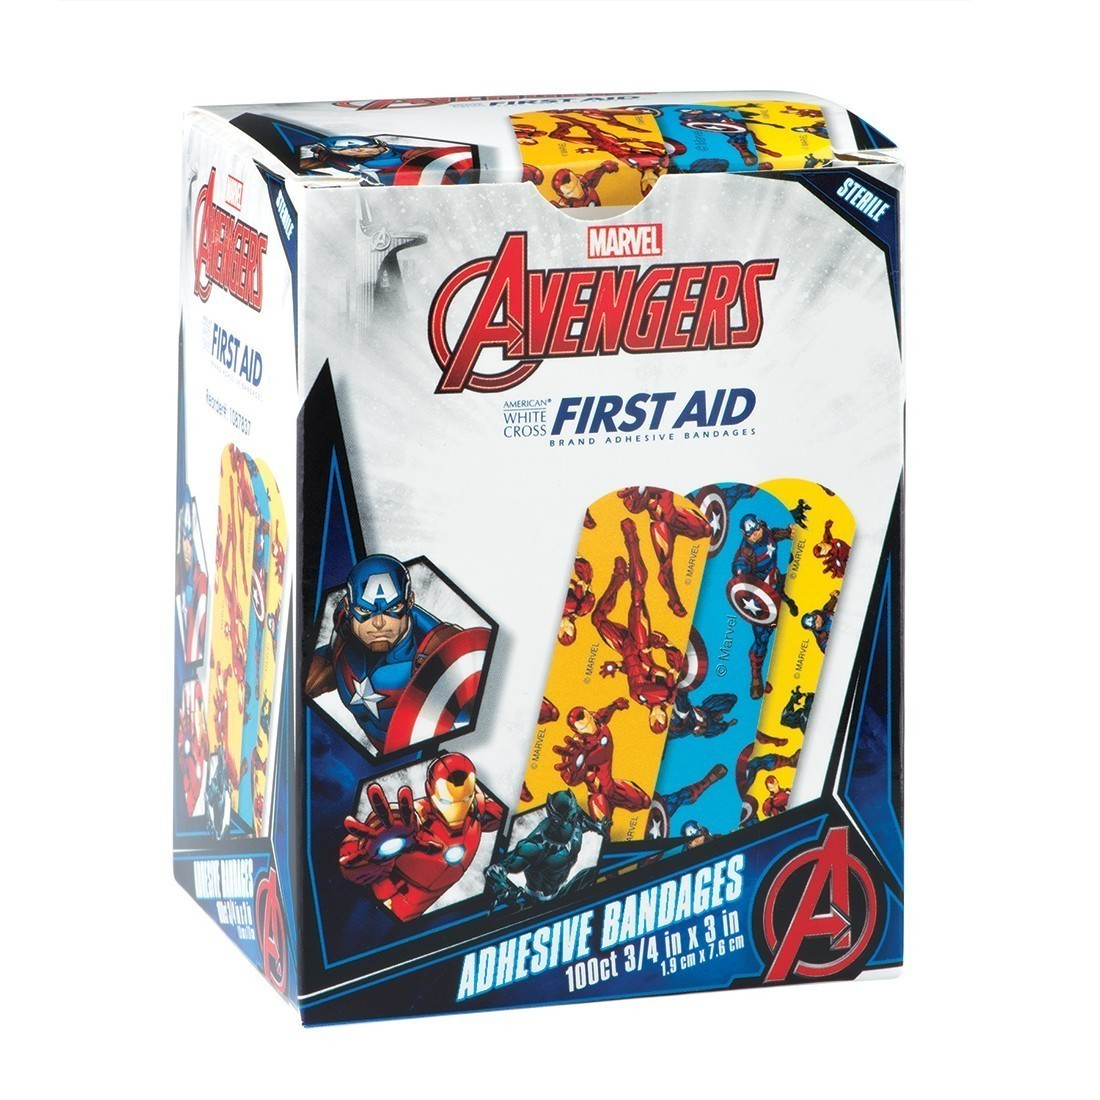 Captain America, Black Panther & Iron Man Bandages [image]